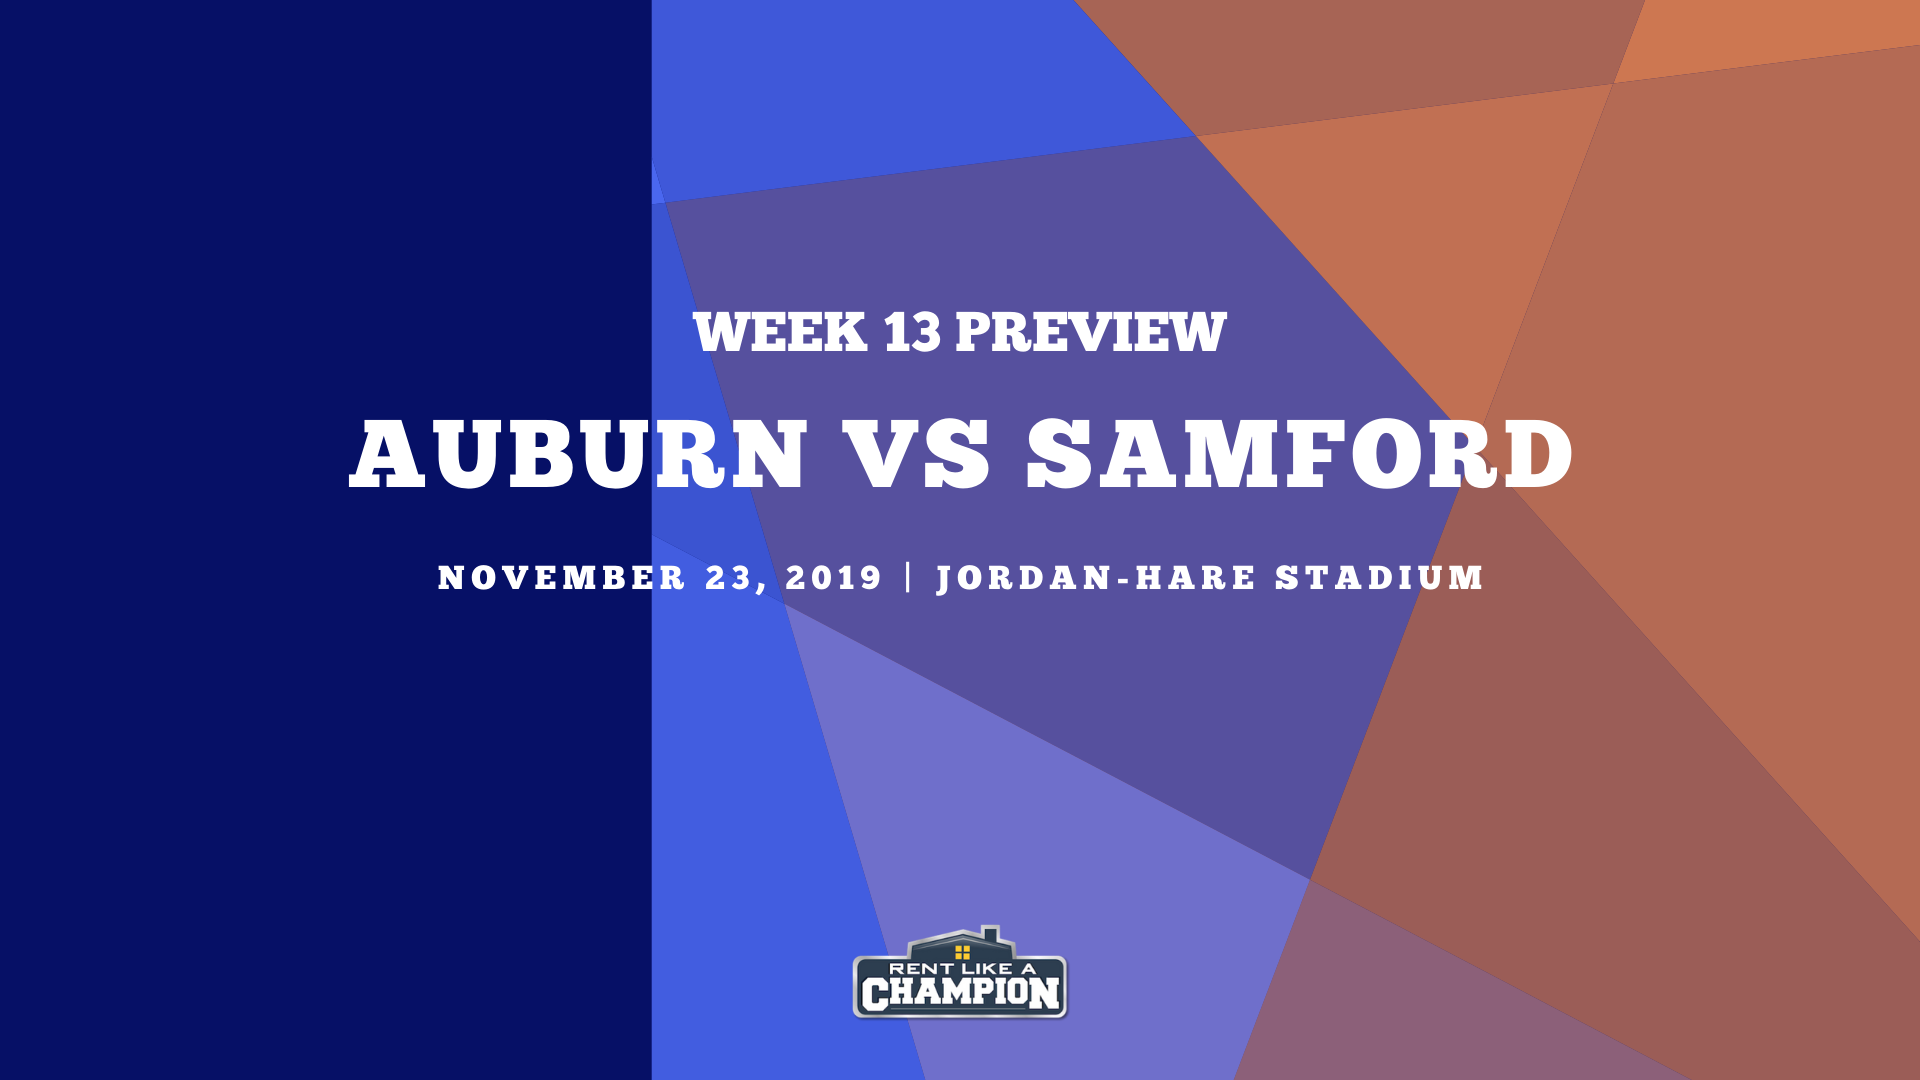 Auburn Game Preview Template (9)